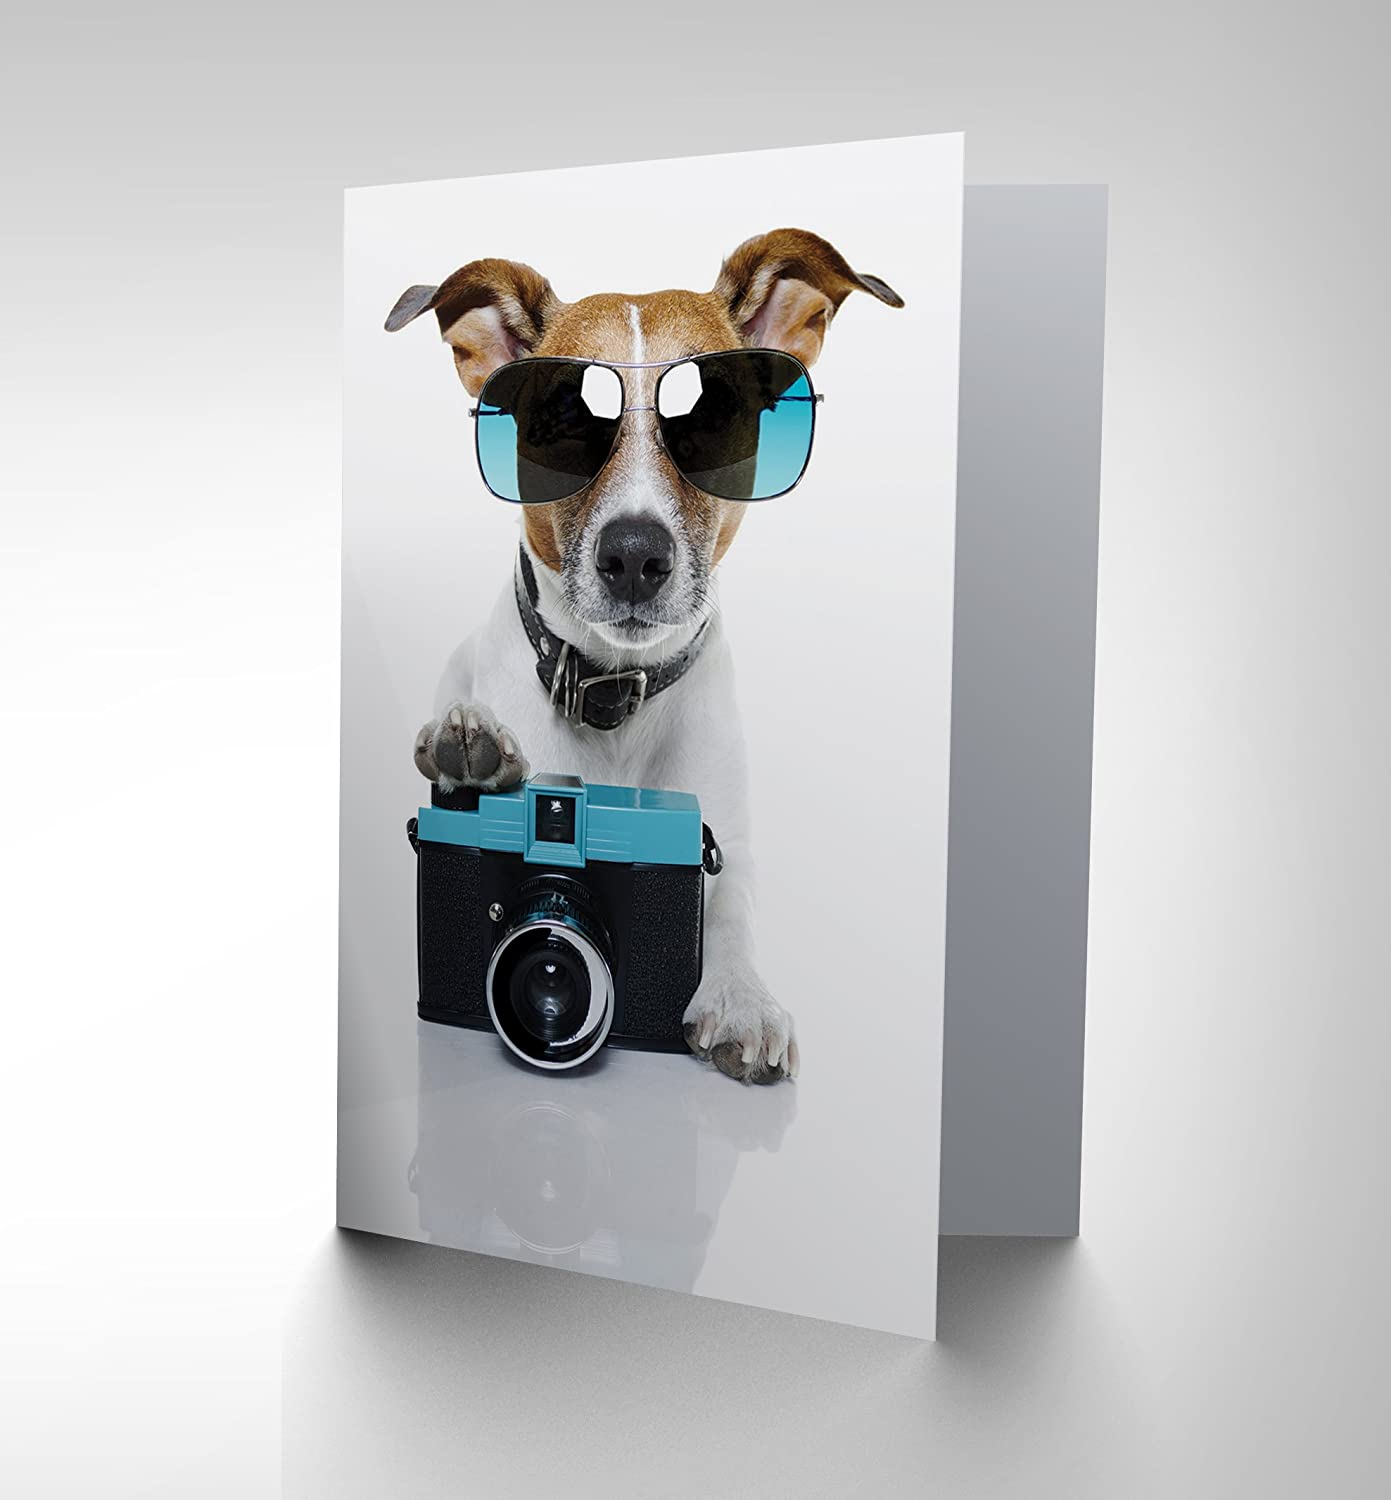 Cool jack russell dog camera photo sunglasses blank birthday card cool jack russell dog camera photo sunglasses blank birthday card cp019 amazon office products bookmarktalkfo Image collections